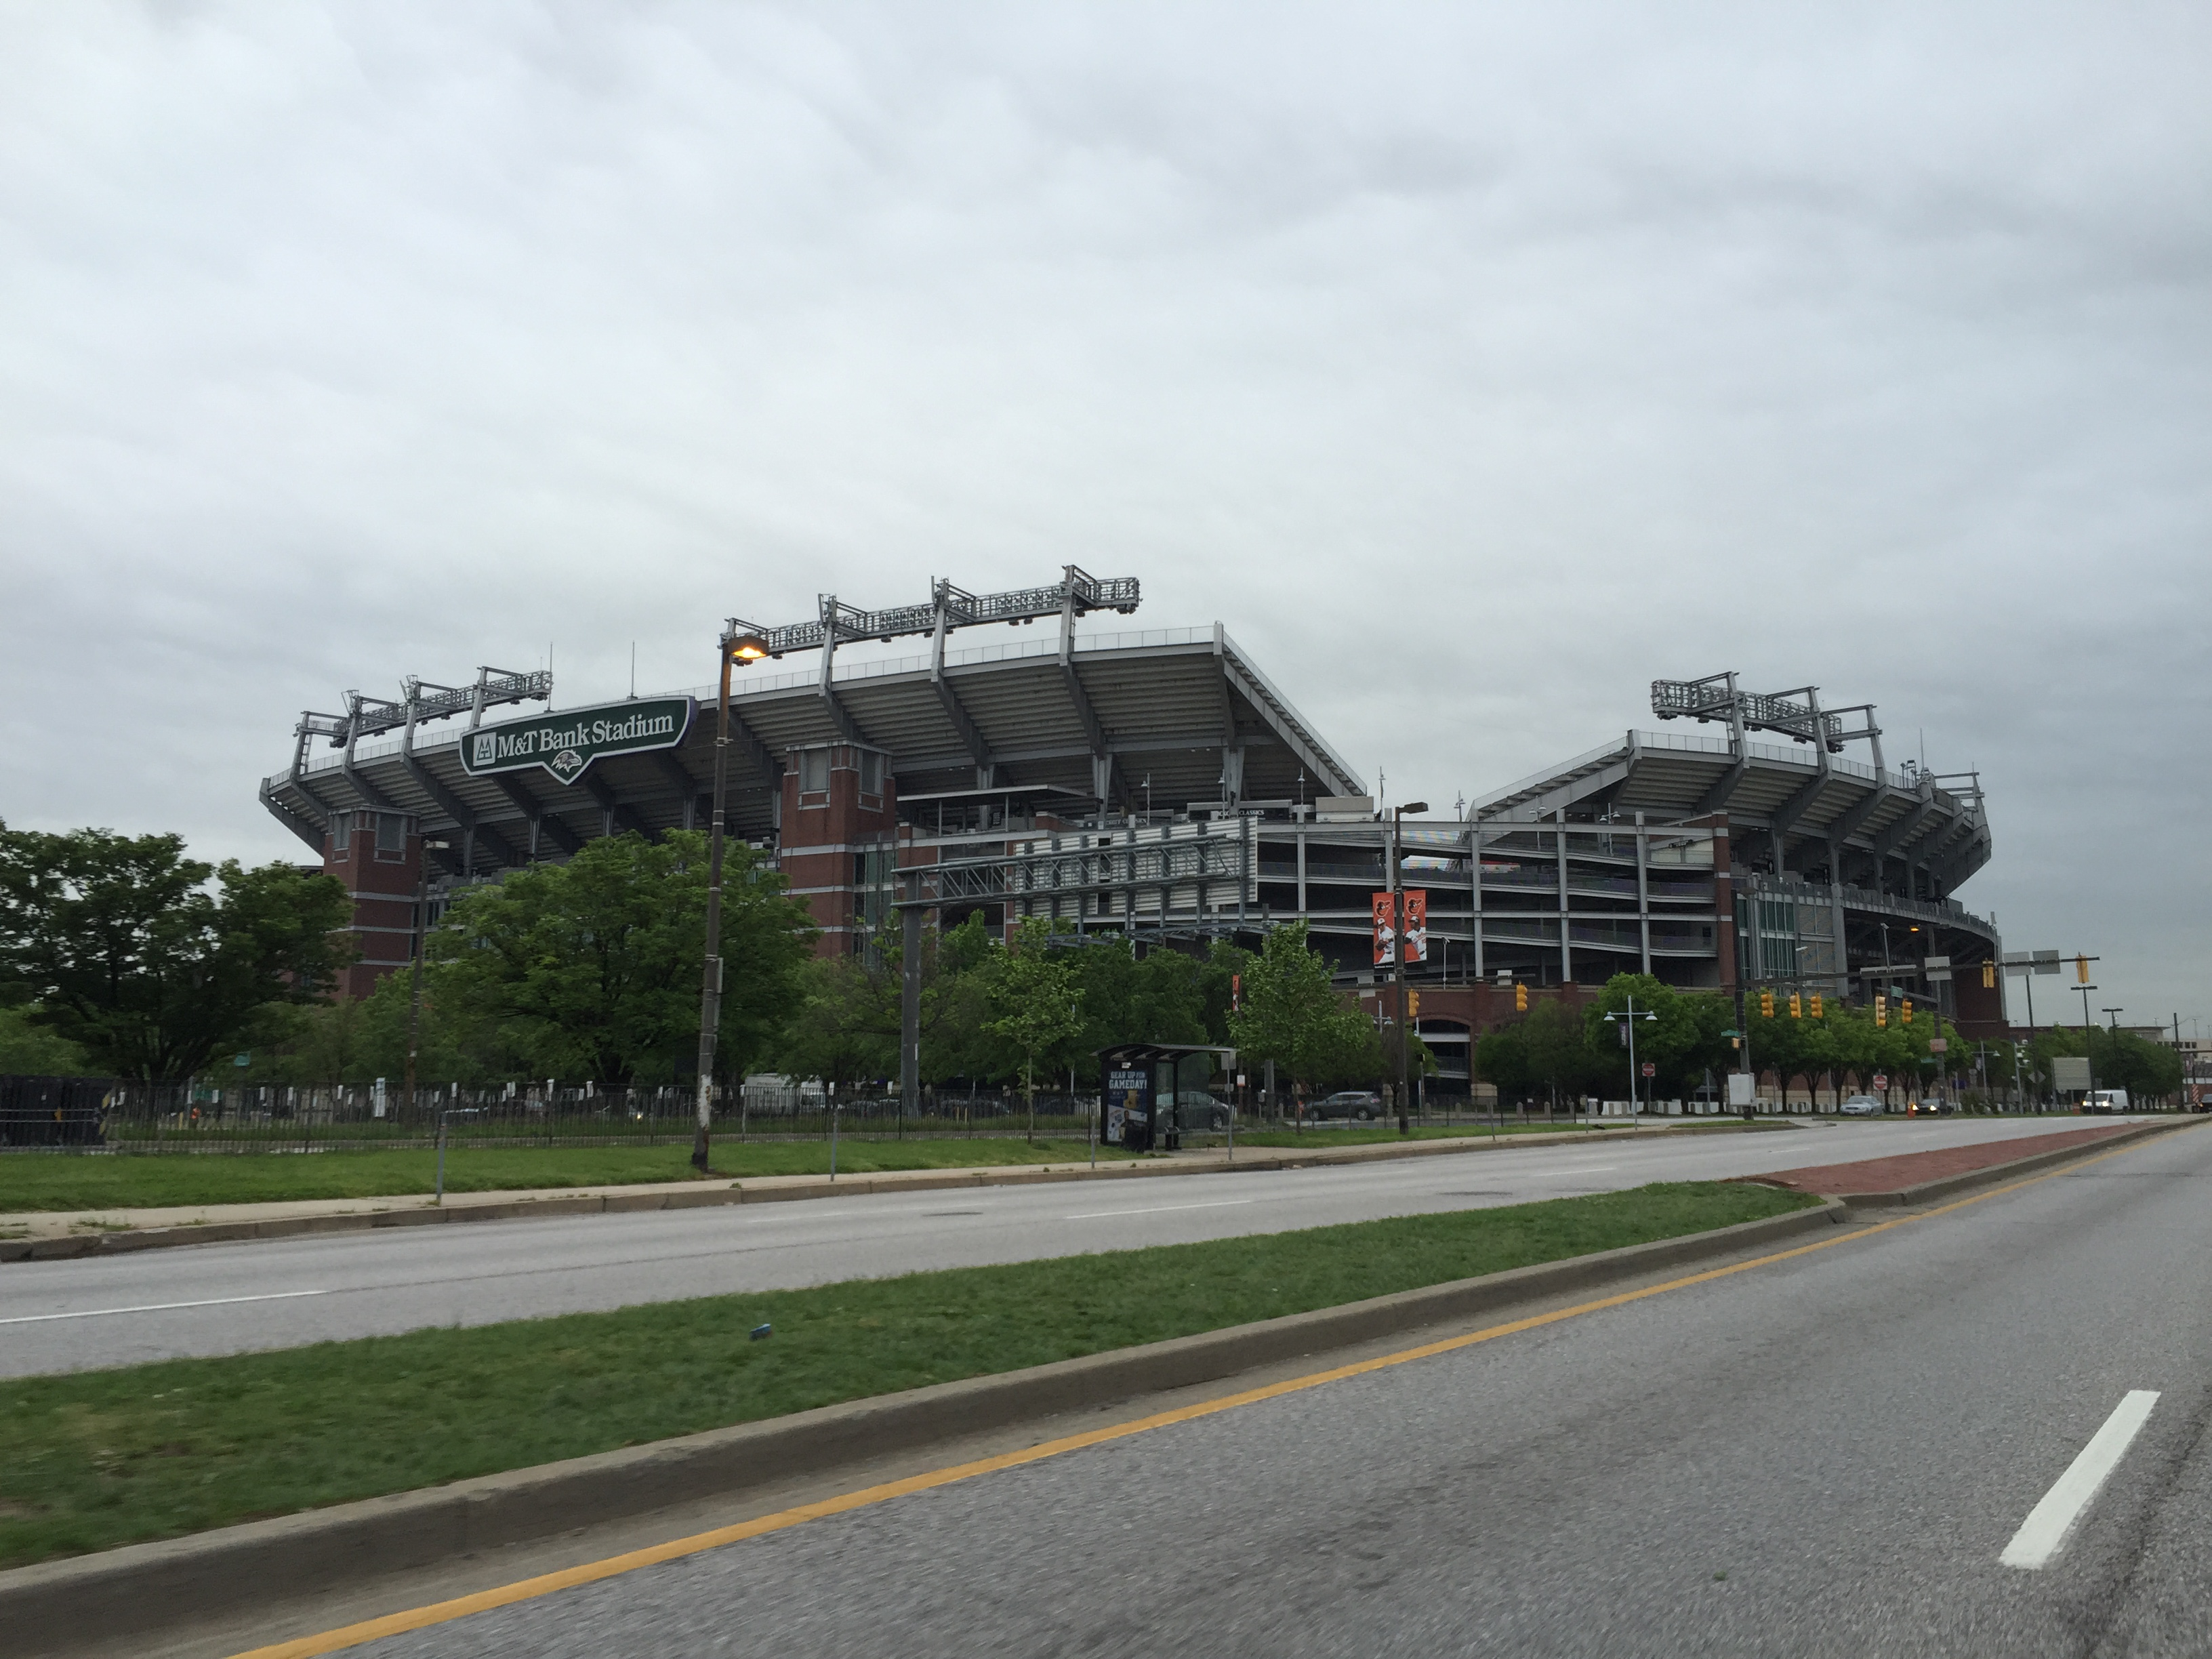 M&T Bank Stadium opened in 1998. The Board of Public Works approval will allow the Ravens and Maryland Stadium Authority to budget up to $144 million in improvements to the stadium.